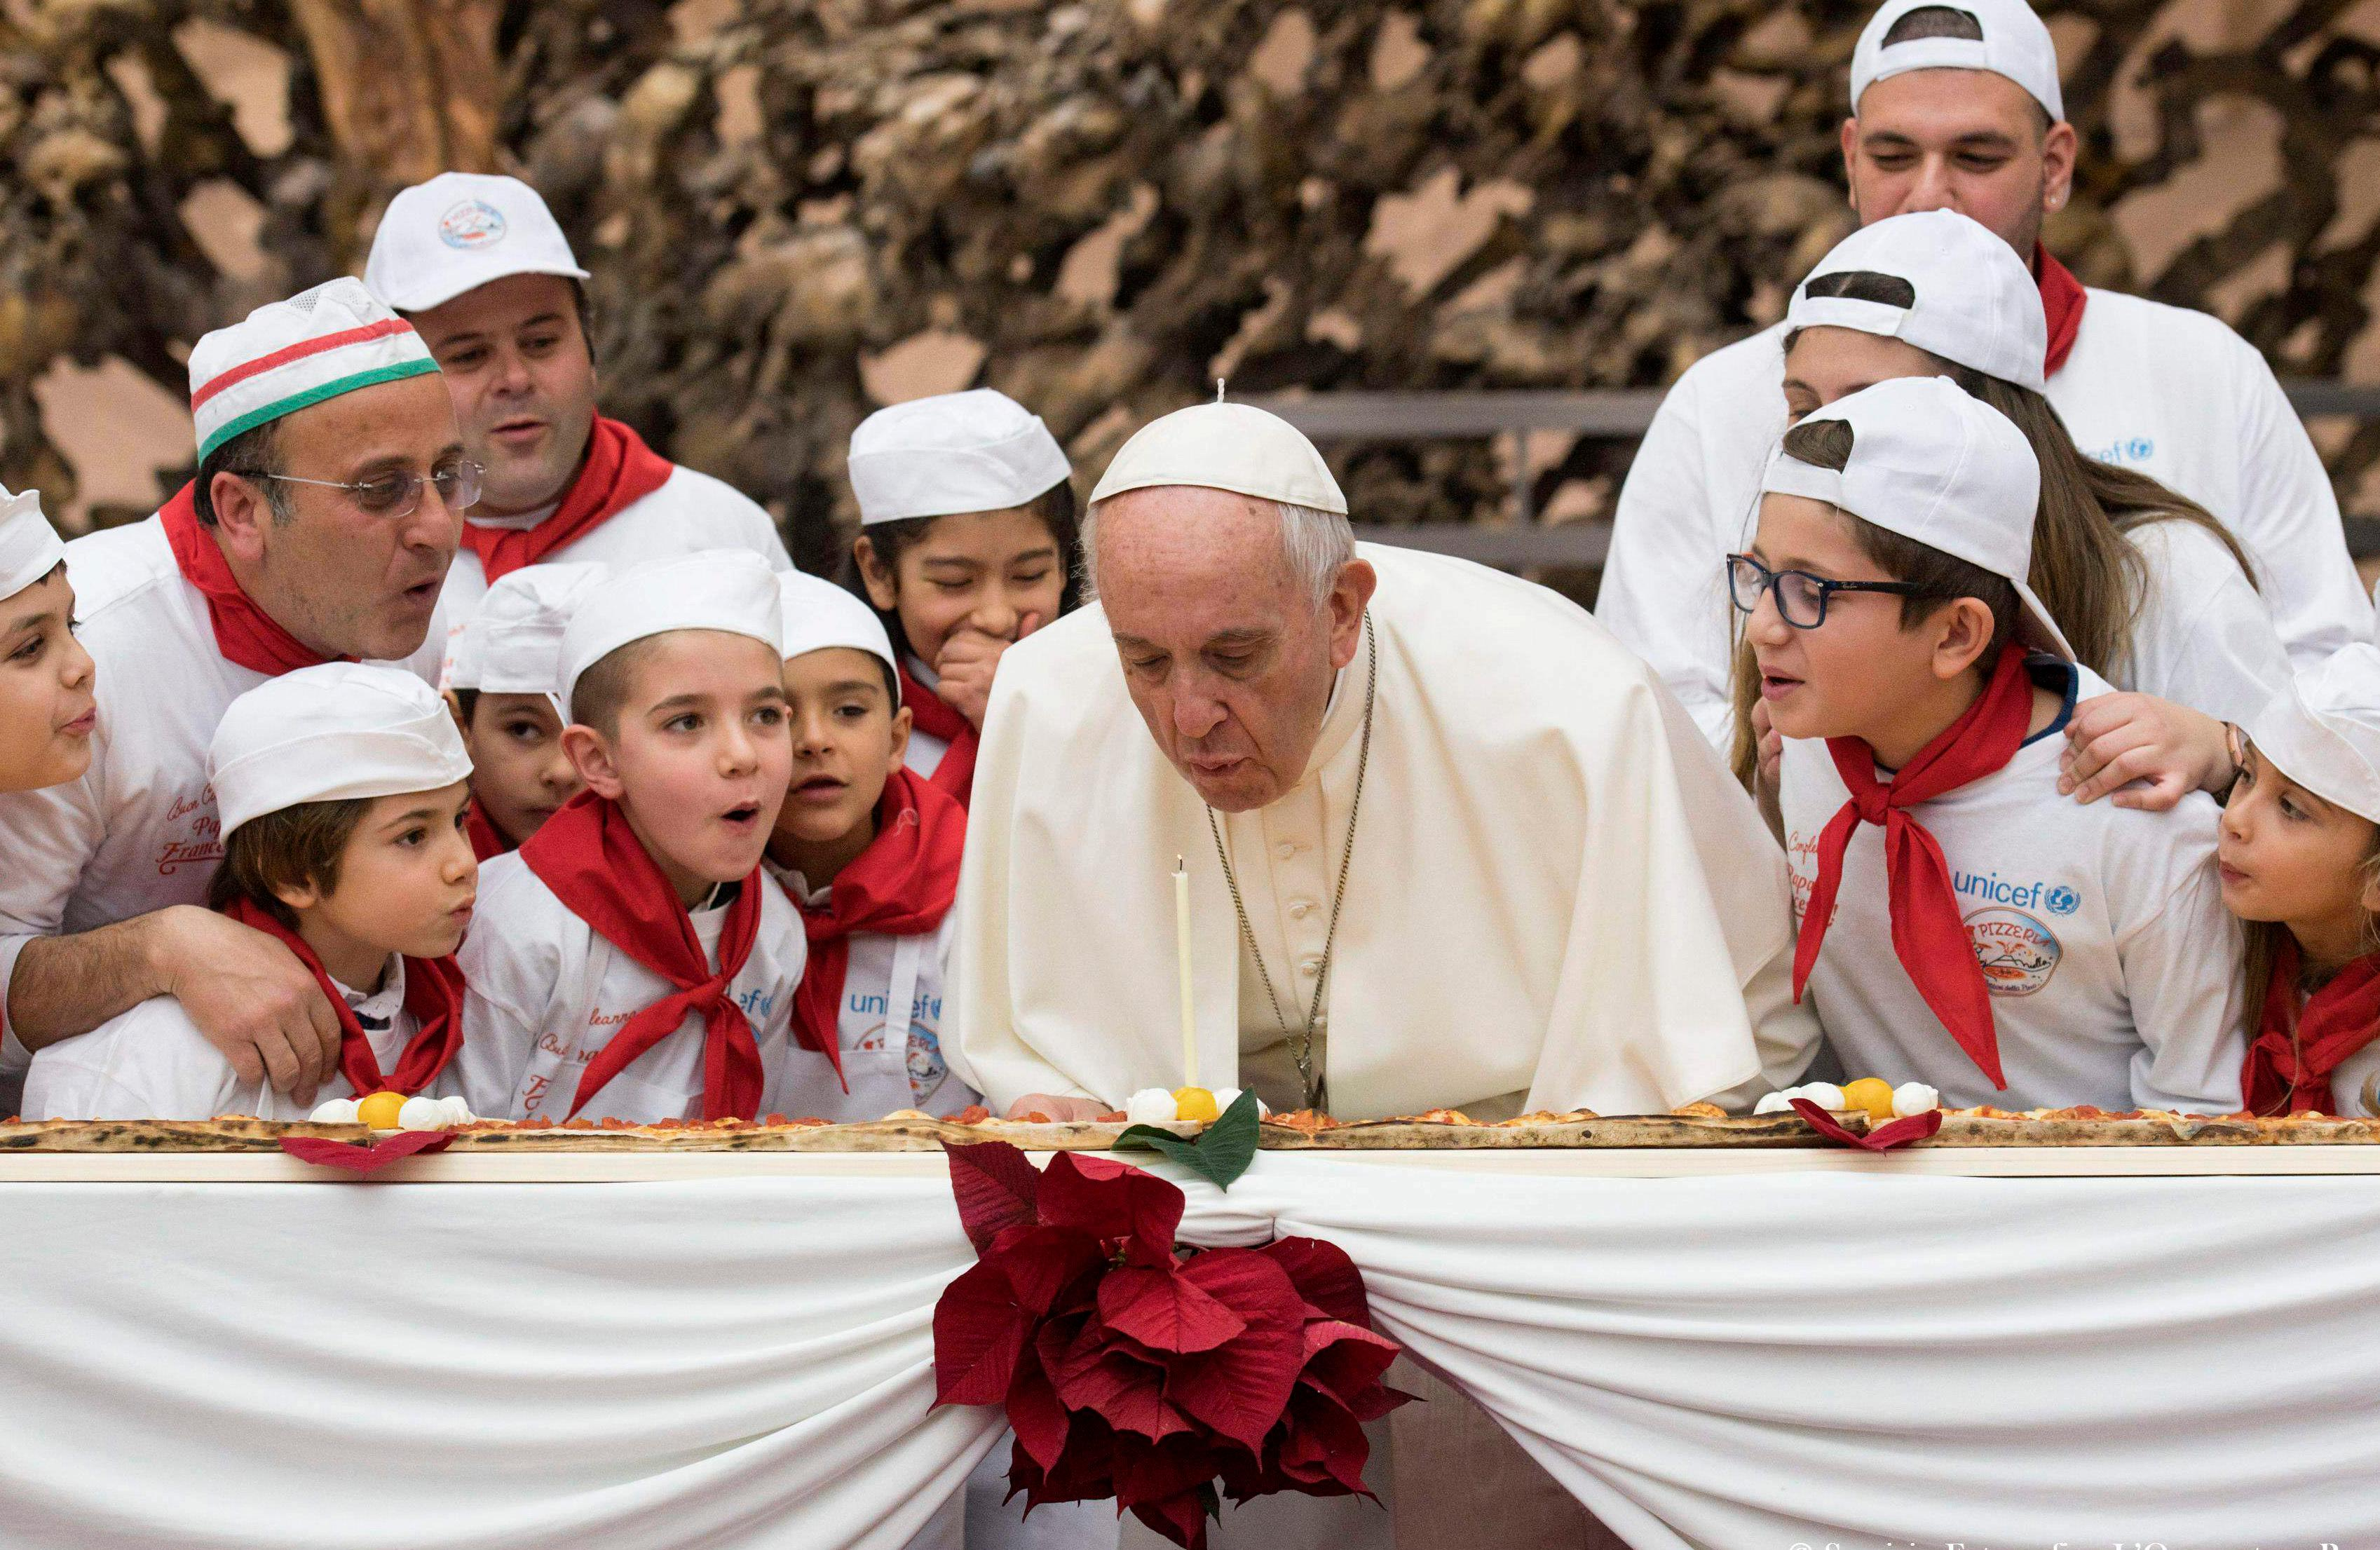 Pope Francis blows a candle on the occasion of his 81st birthday during a private audience with children the Paul VI hall at the Vatican, Sunday, Dec. 17, 2017. (L'Osservatore Romano/Pool Photo via AP)